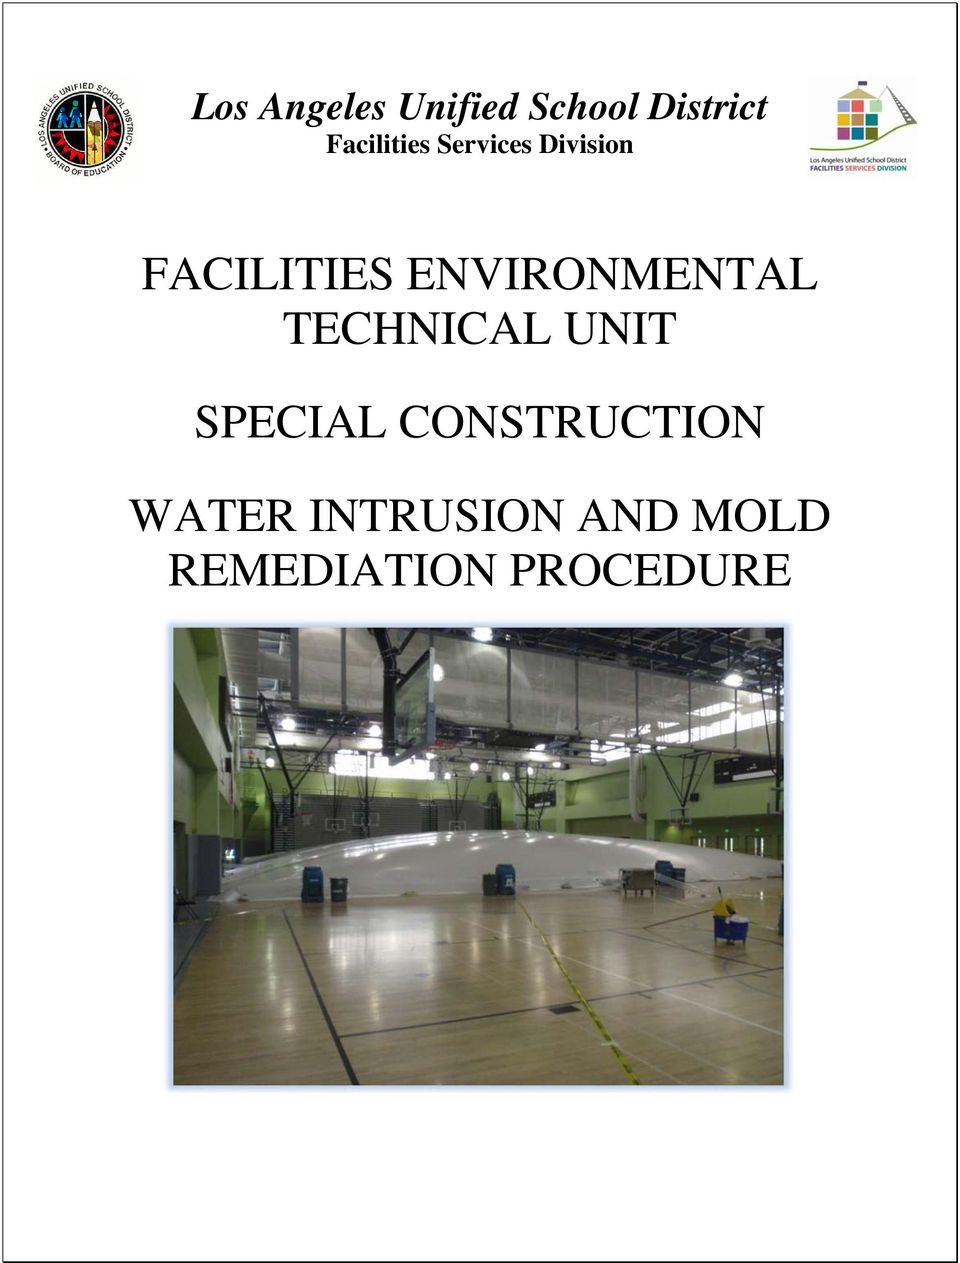 ENVIRONMENTAL TECHNICAL UNIT SPECIAL